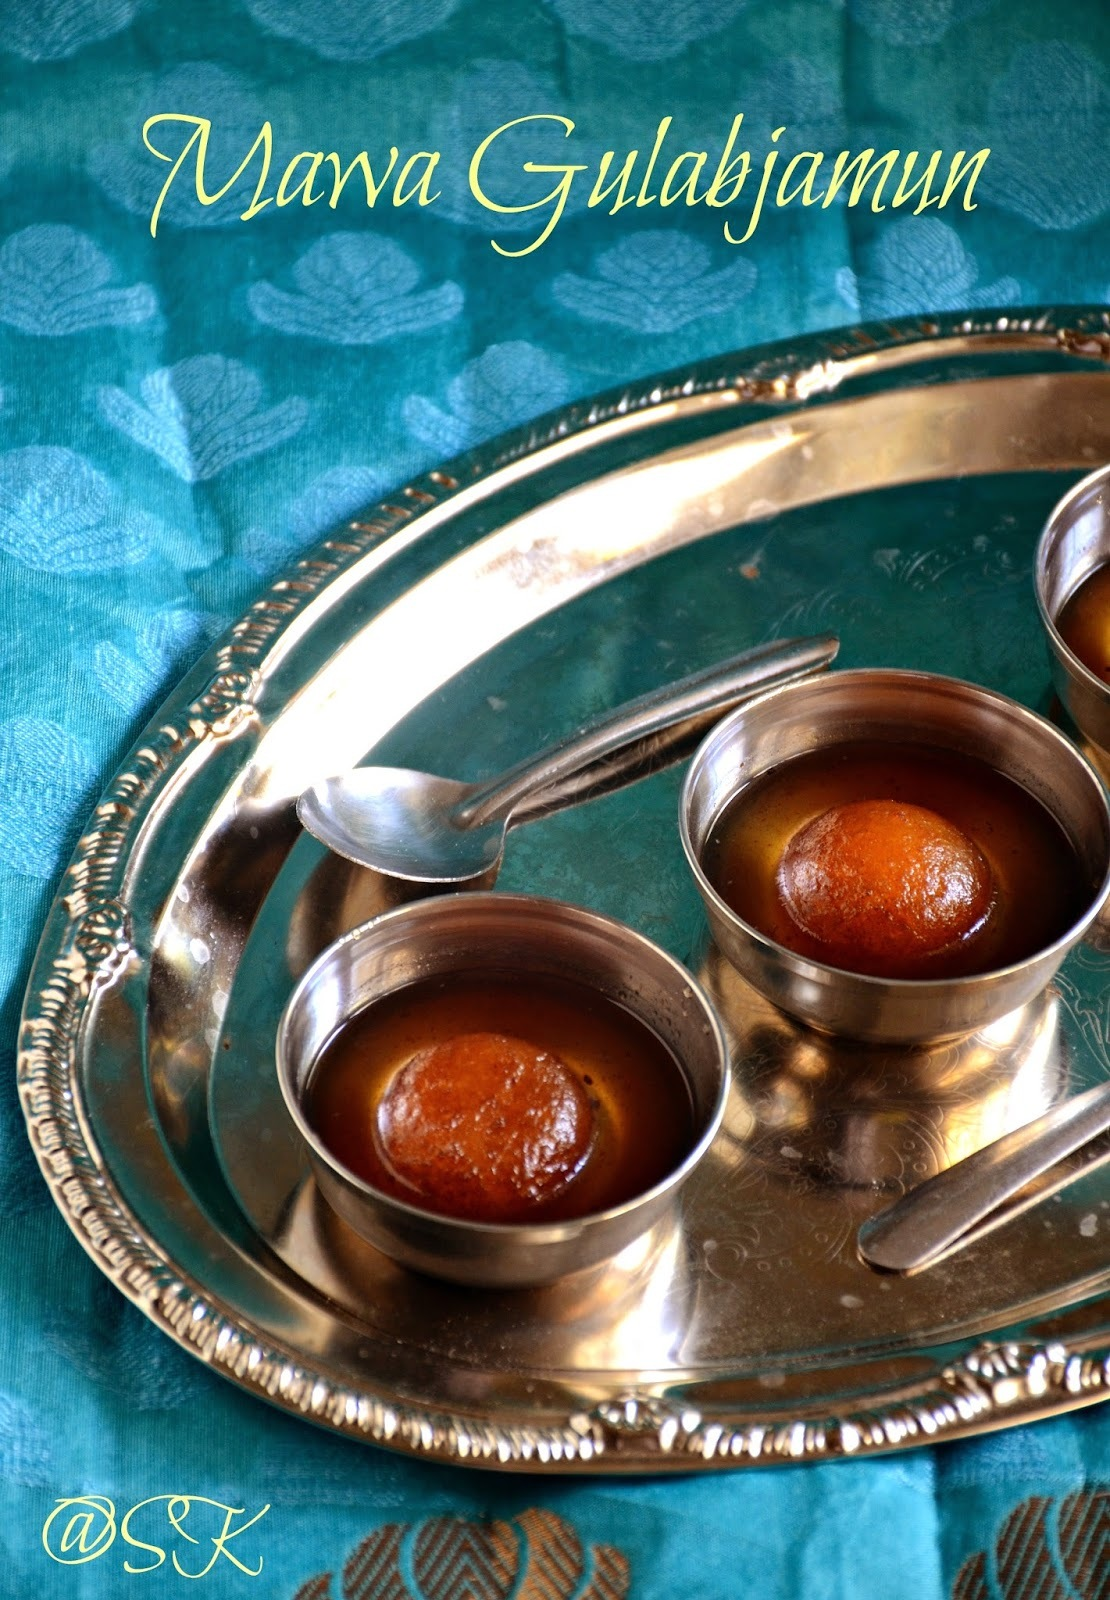 Mawa Gulab Jamun - Gulab Jamun using Khoya - My 500 th post - Step by step